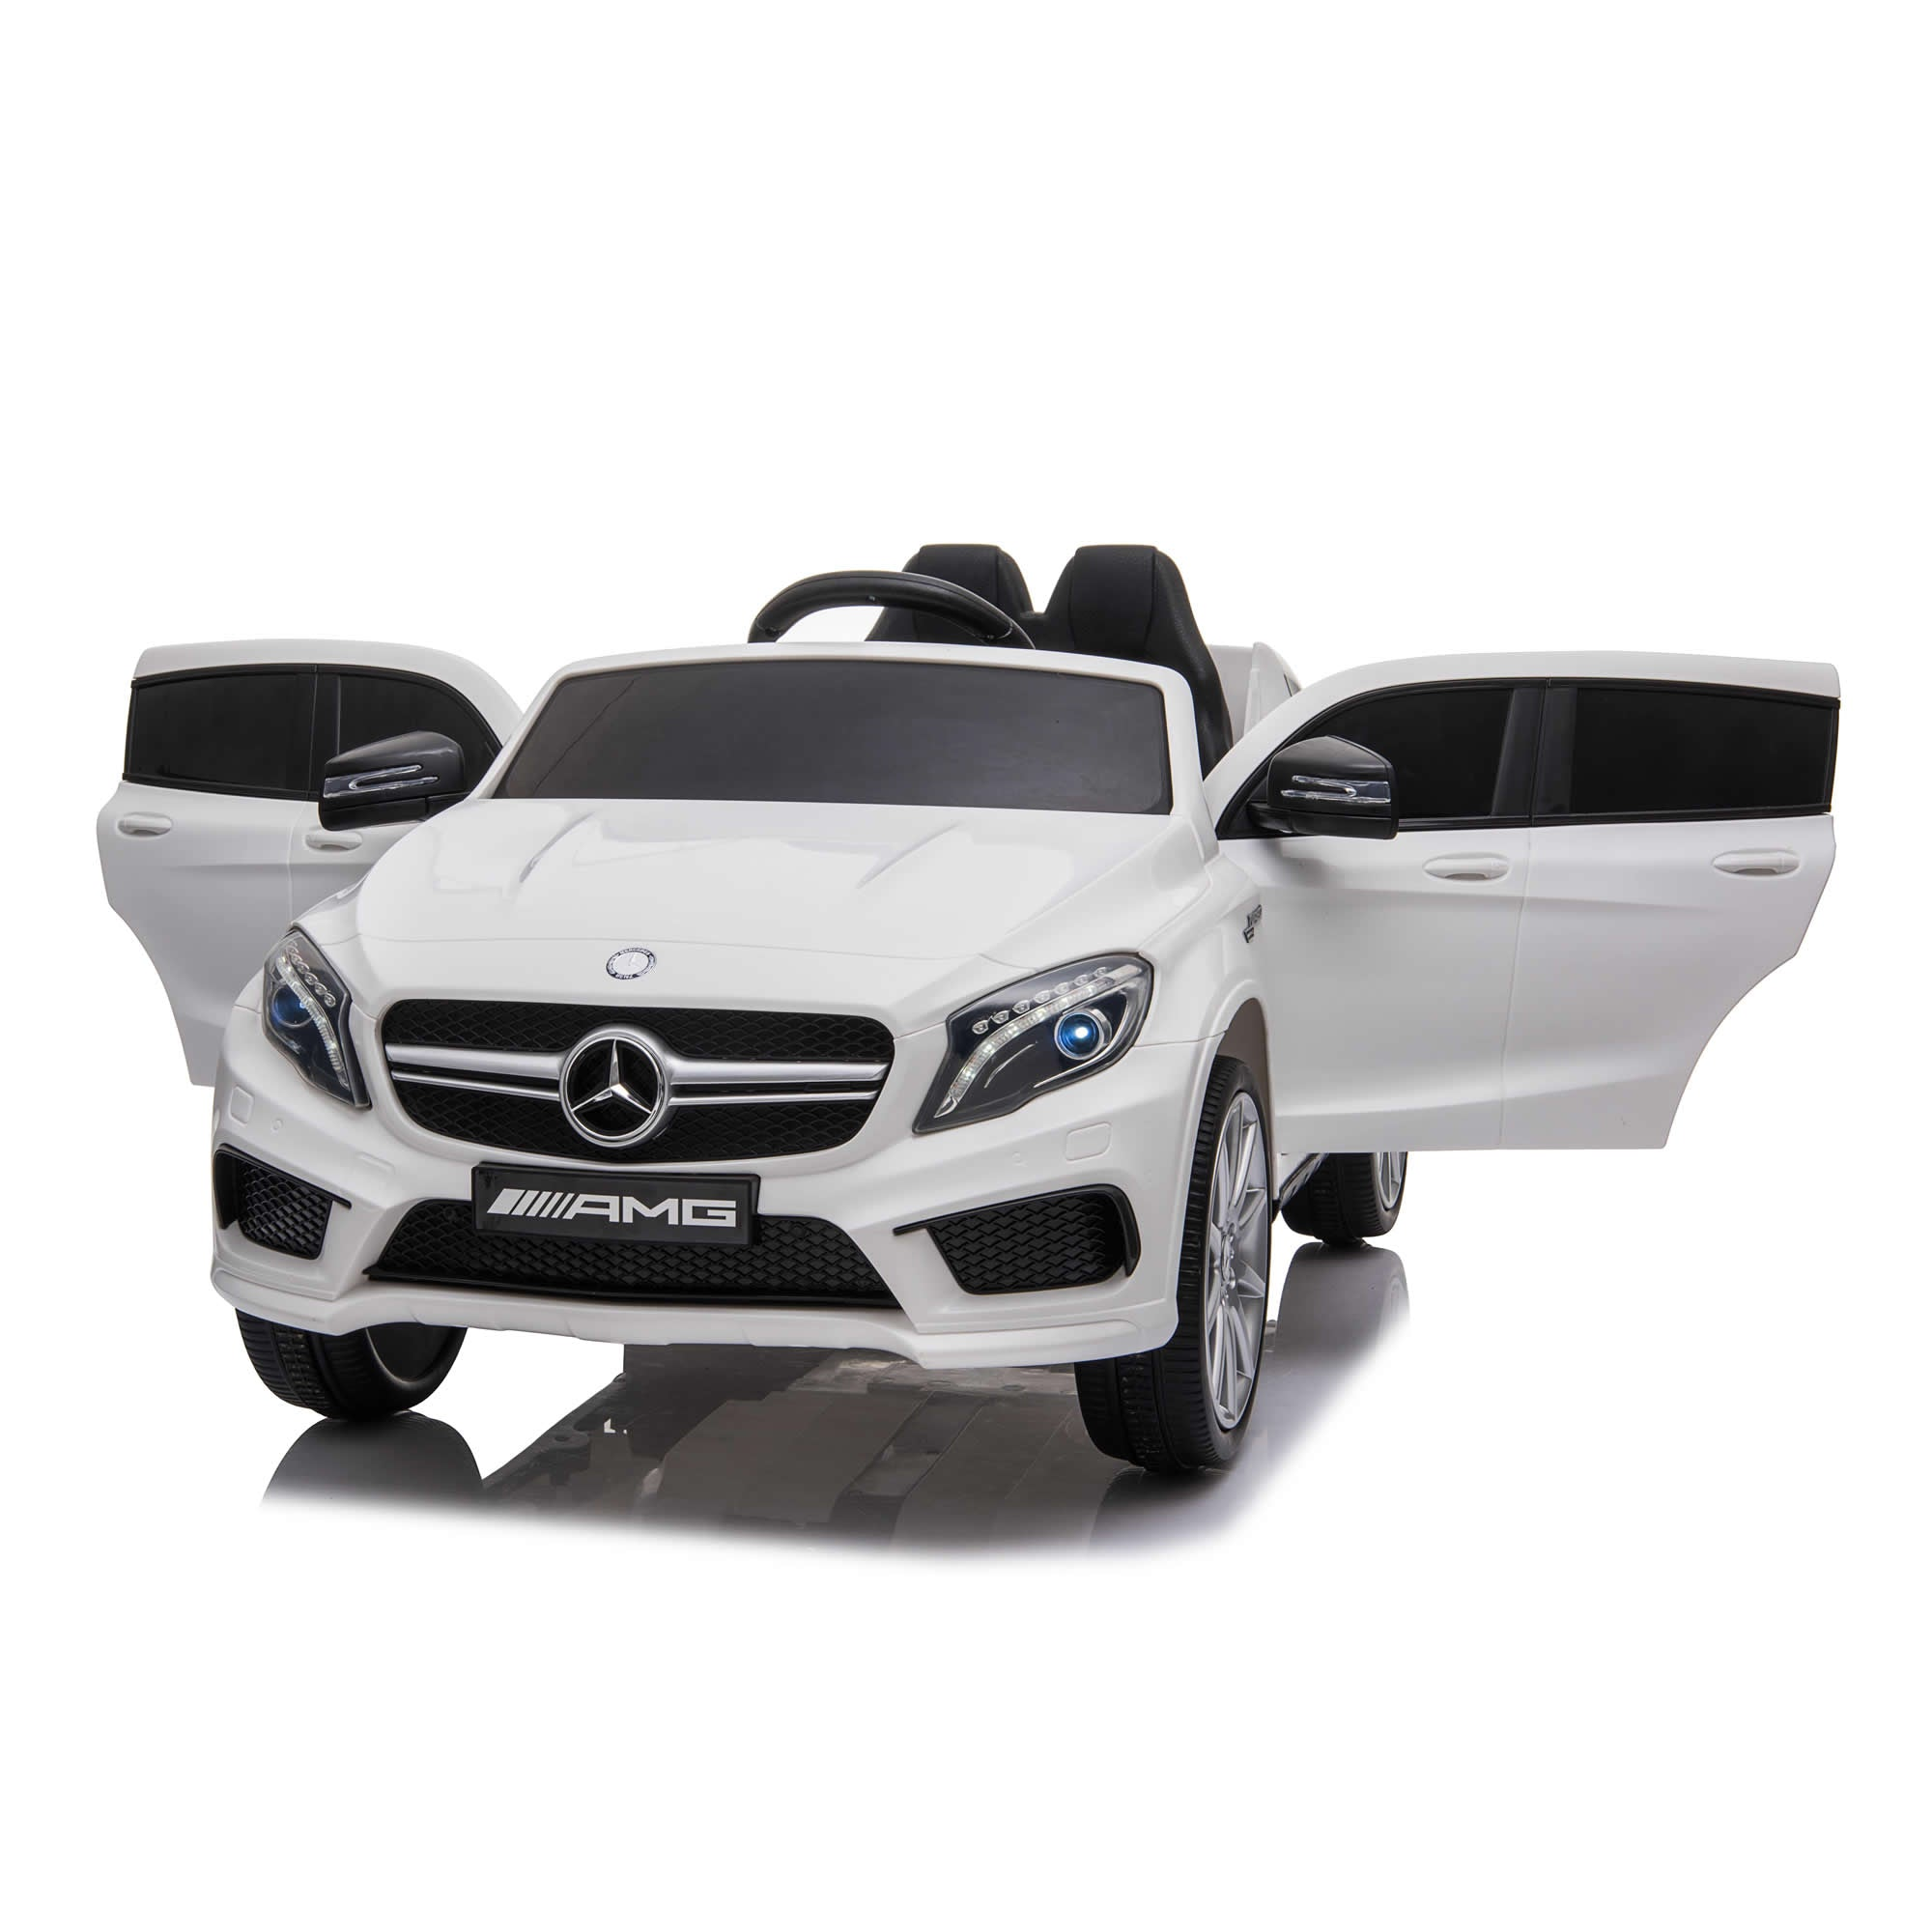 Licensed Mercedes AMG GLA45 12V Kids Ride On Car With High Doors - White